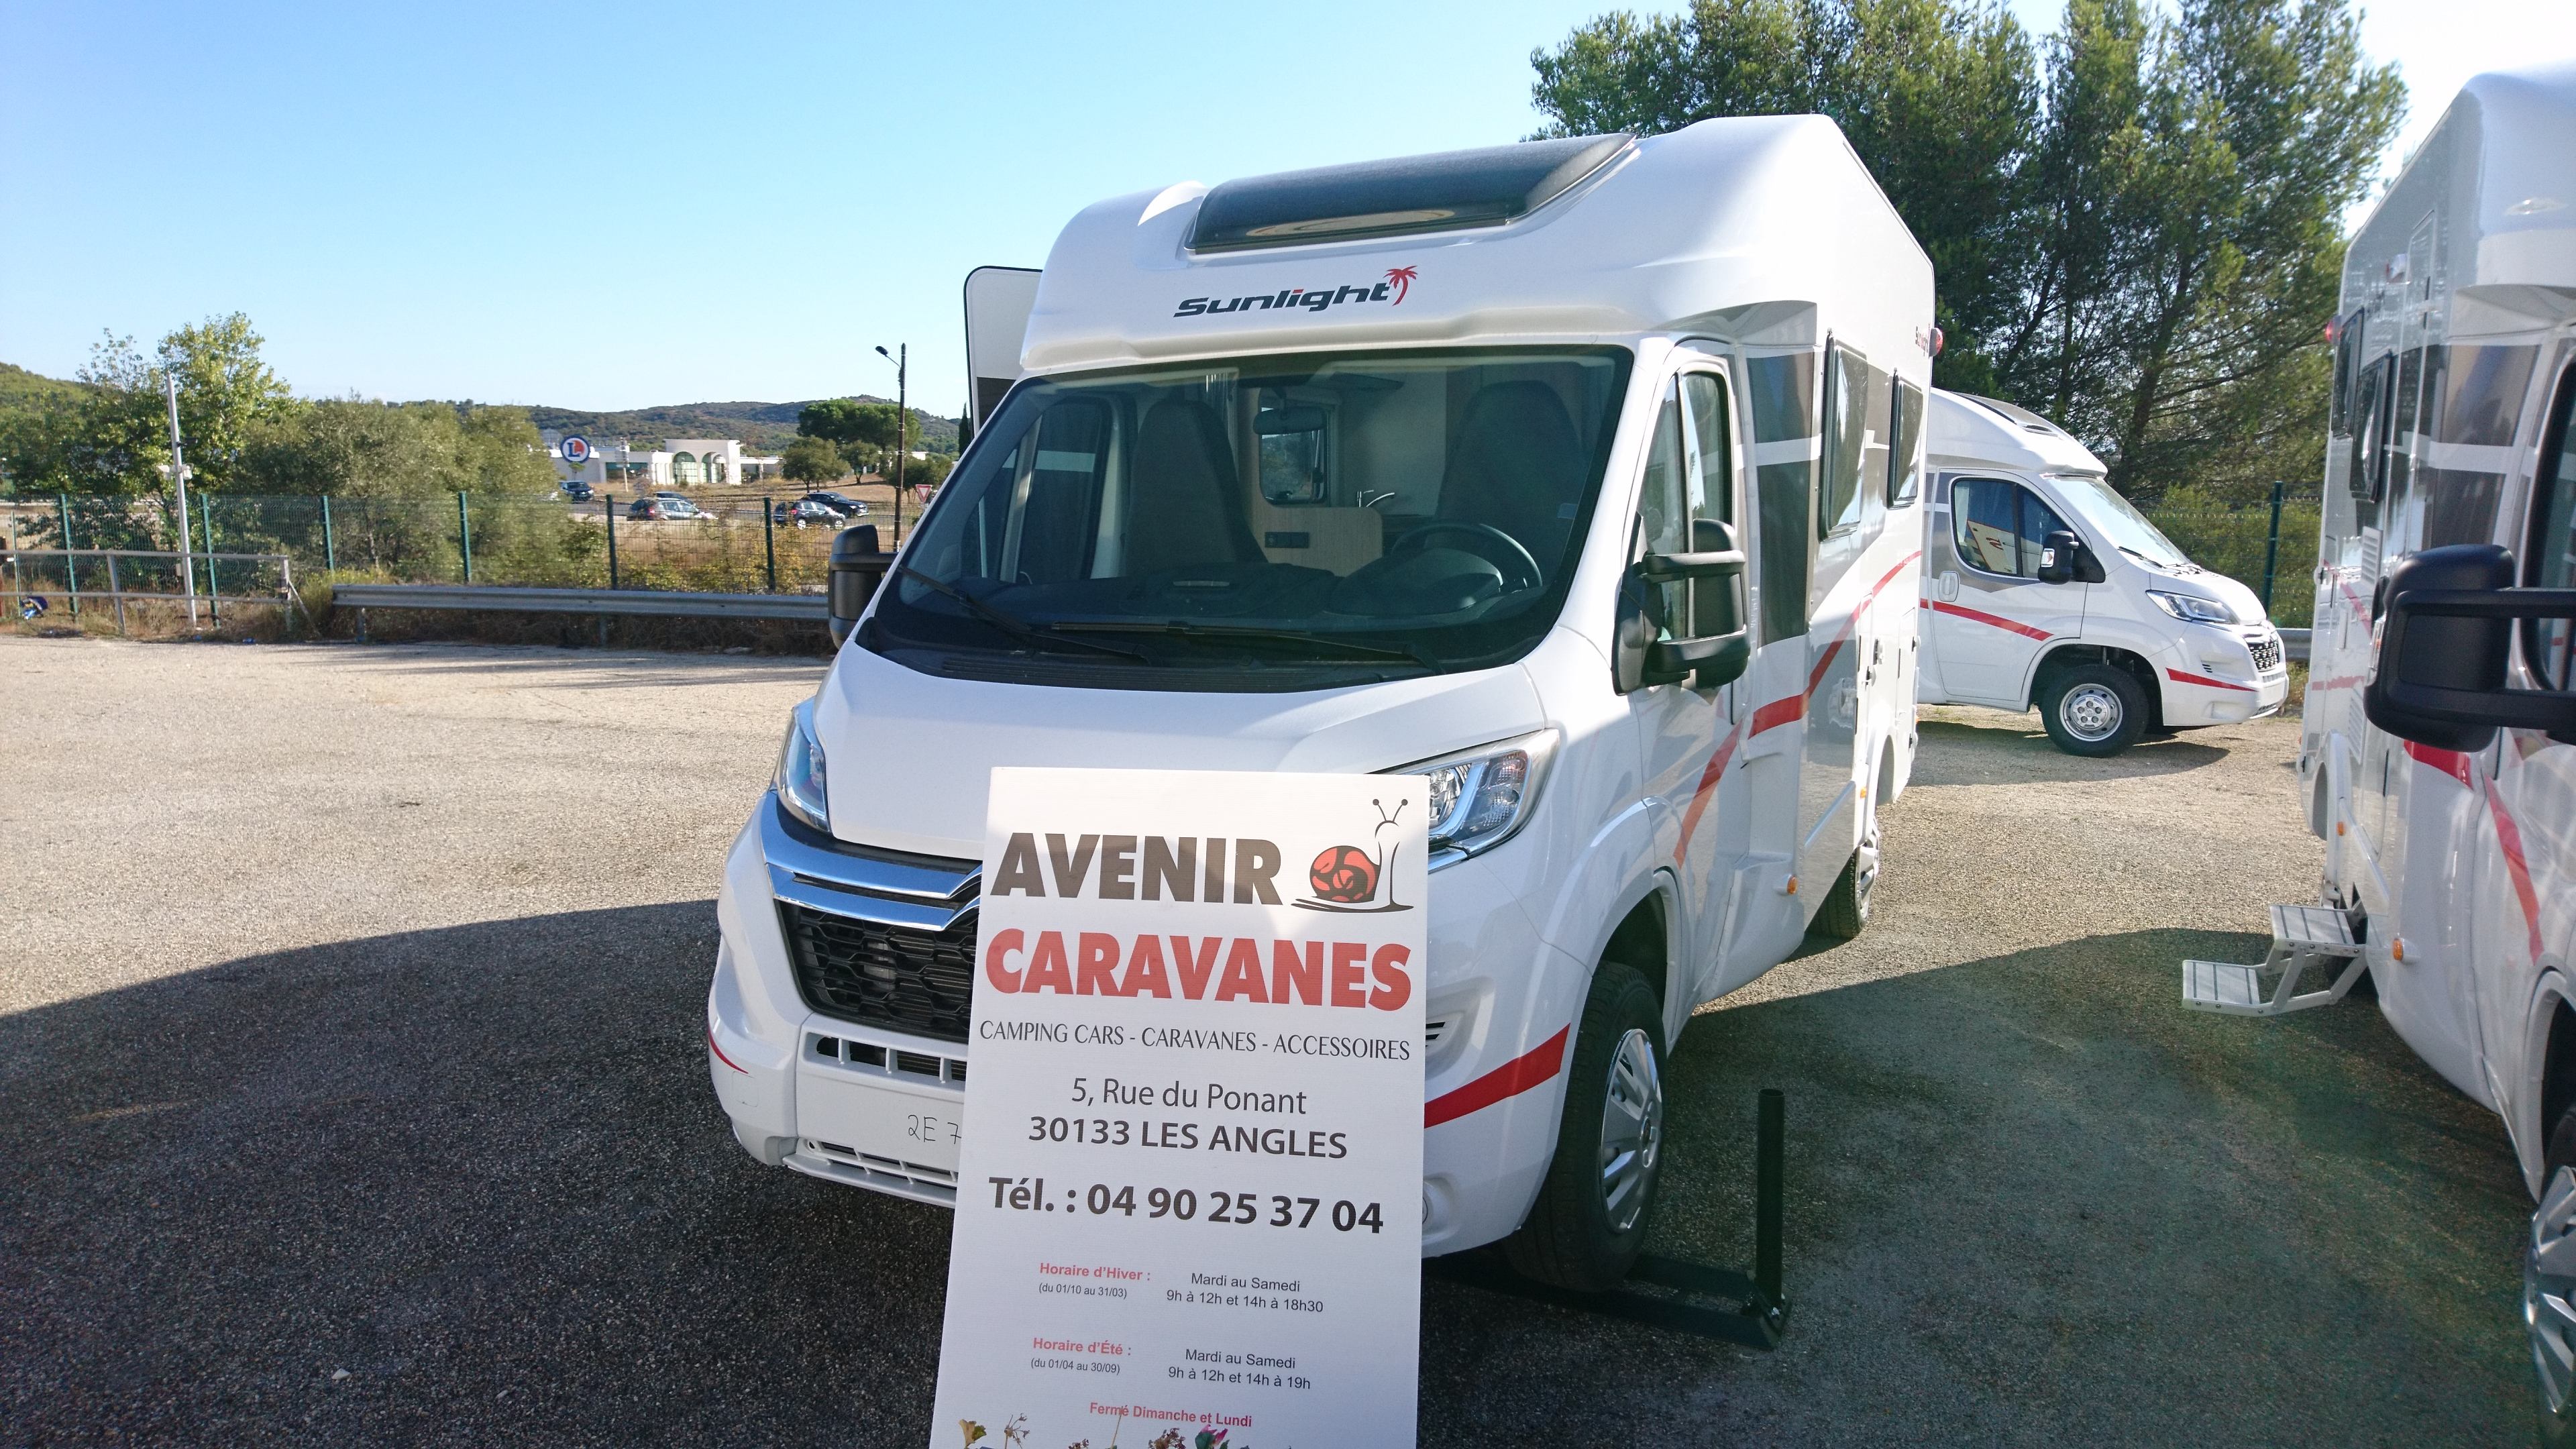 Sunlight t 58 neuf de 2018 citroen camping car en for Garage citroen les angles 30